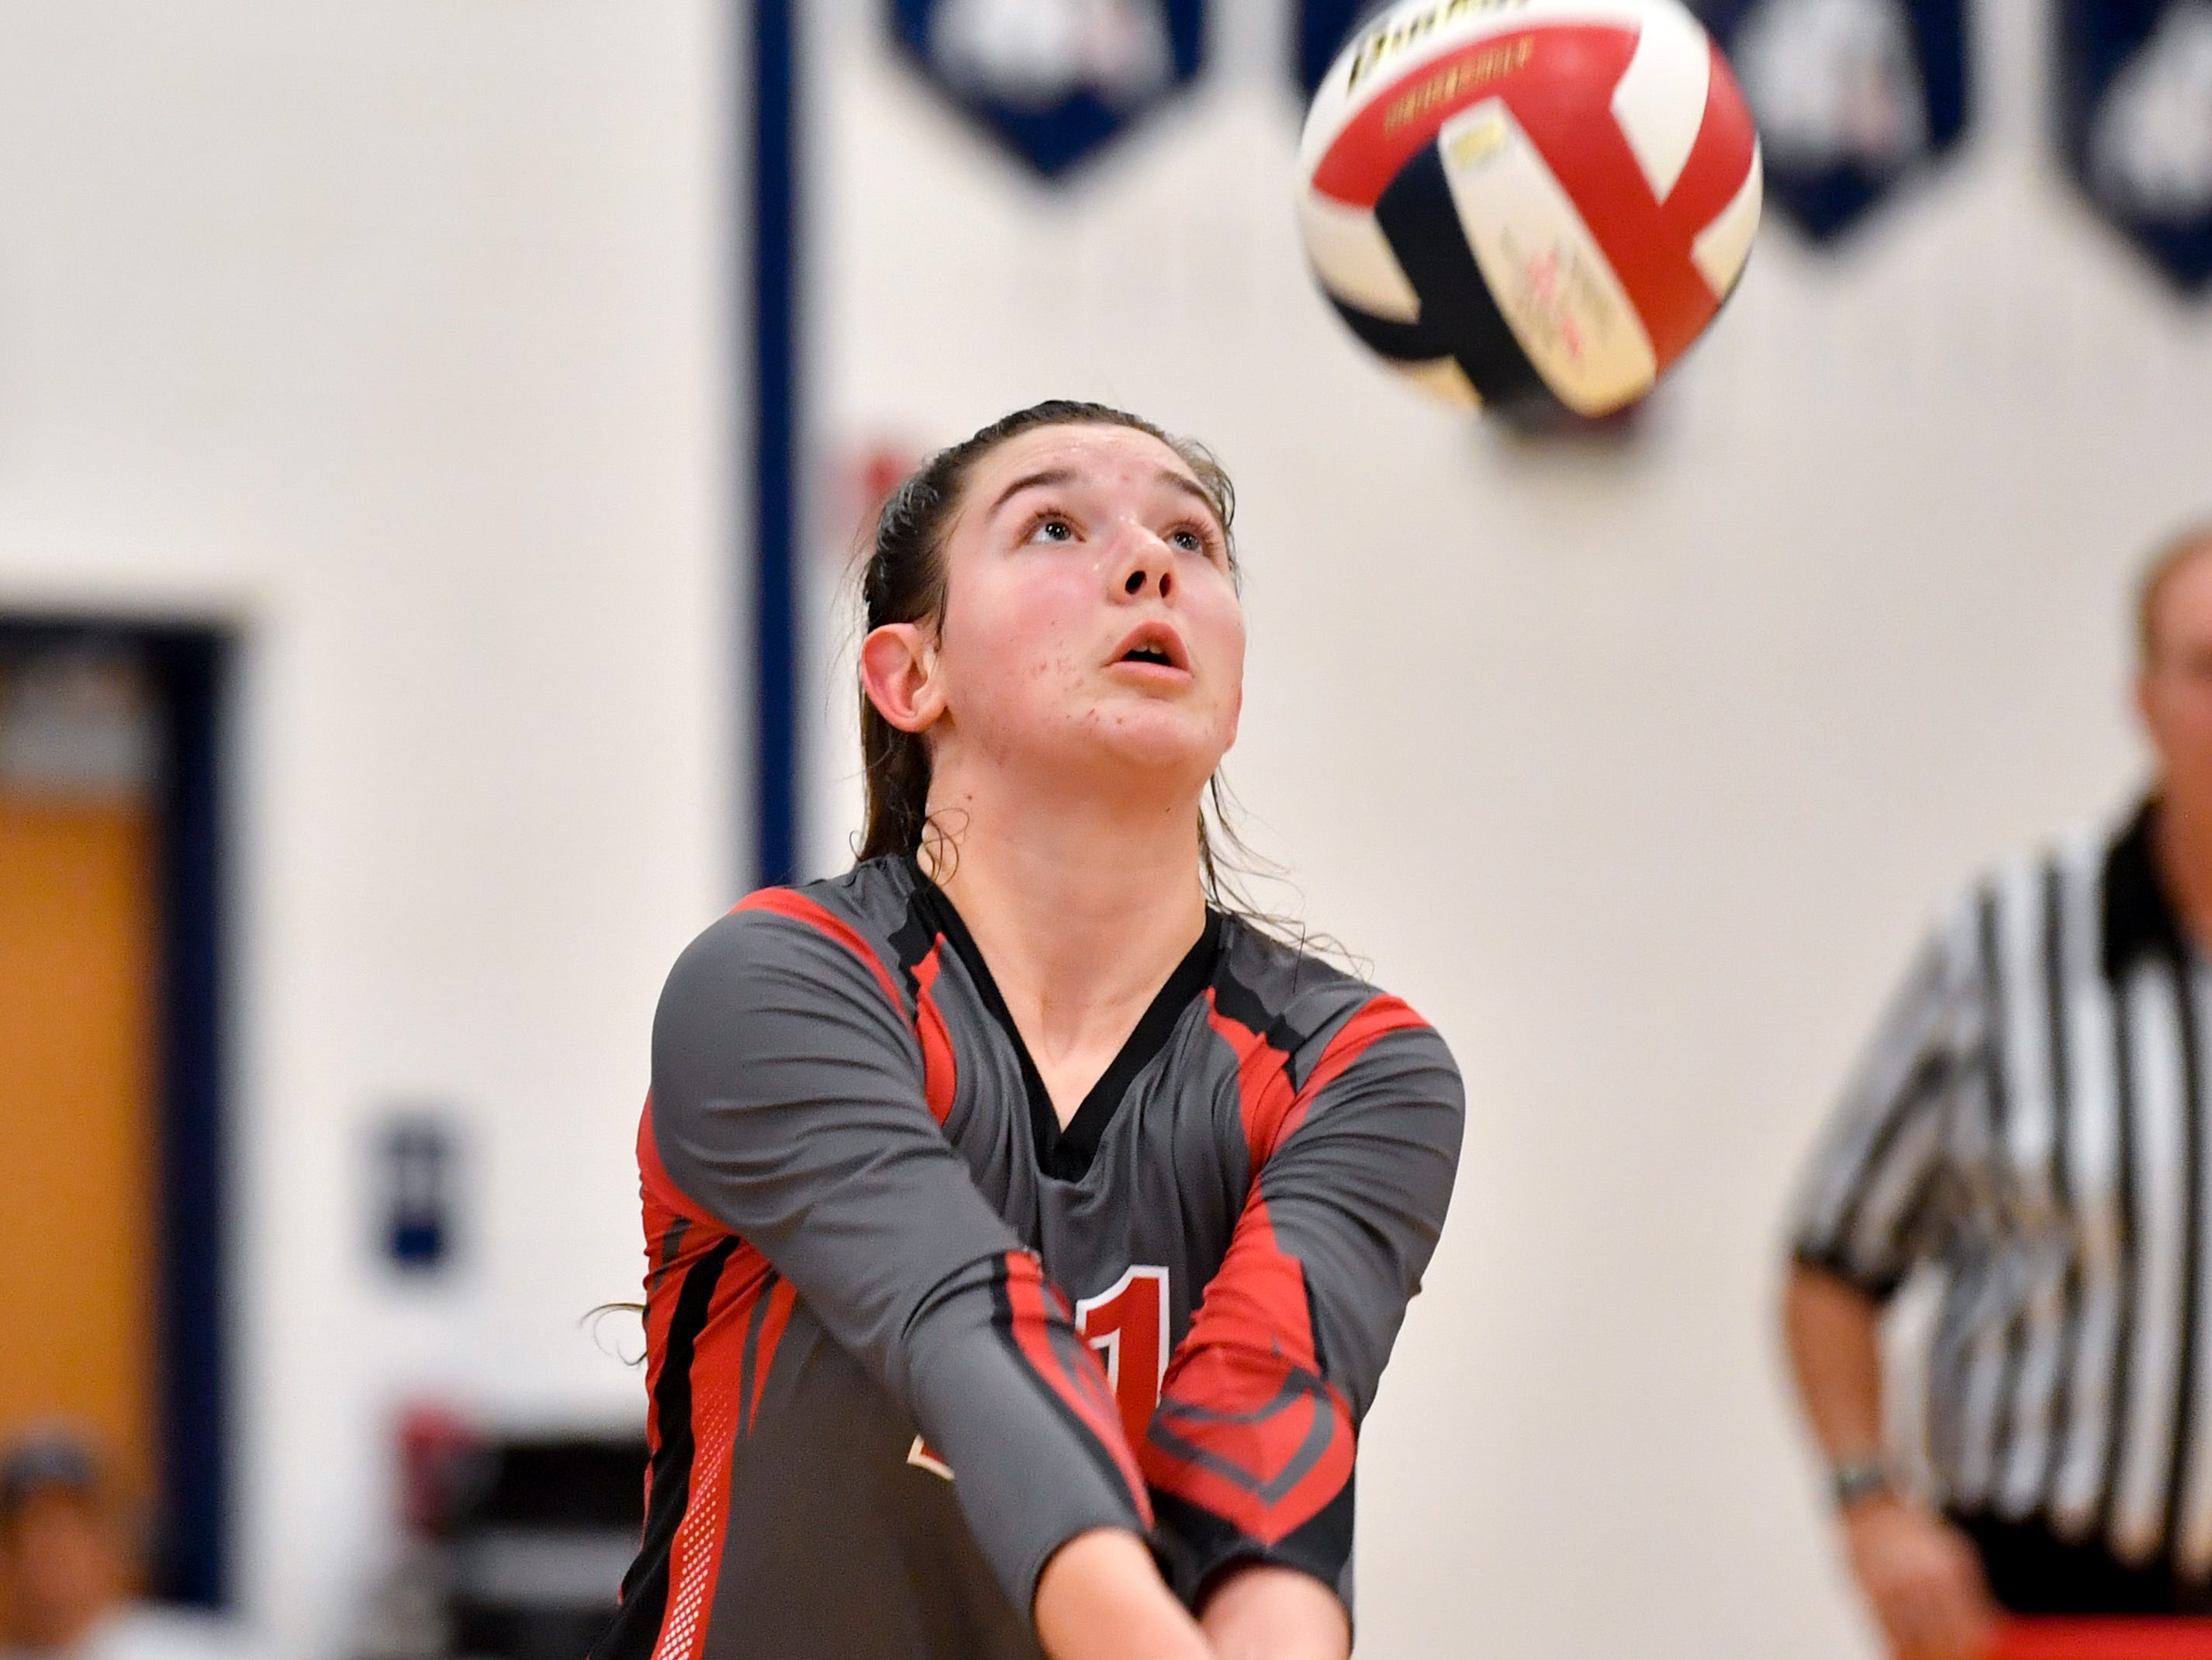 Emma Davis (21) controls the ball during the District 3 Class 3A girls' volleyball quarterfinals between Dover and York Suburban at West York High School, October 30, 2018. The Eagles defeated the Trojans 3-2.